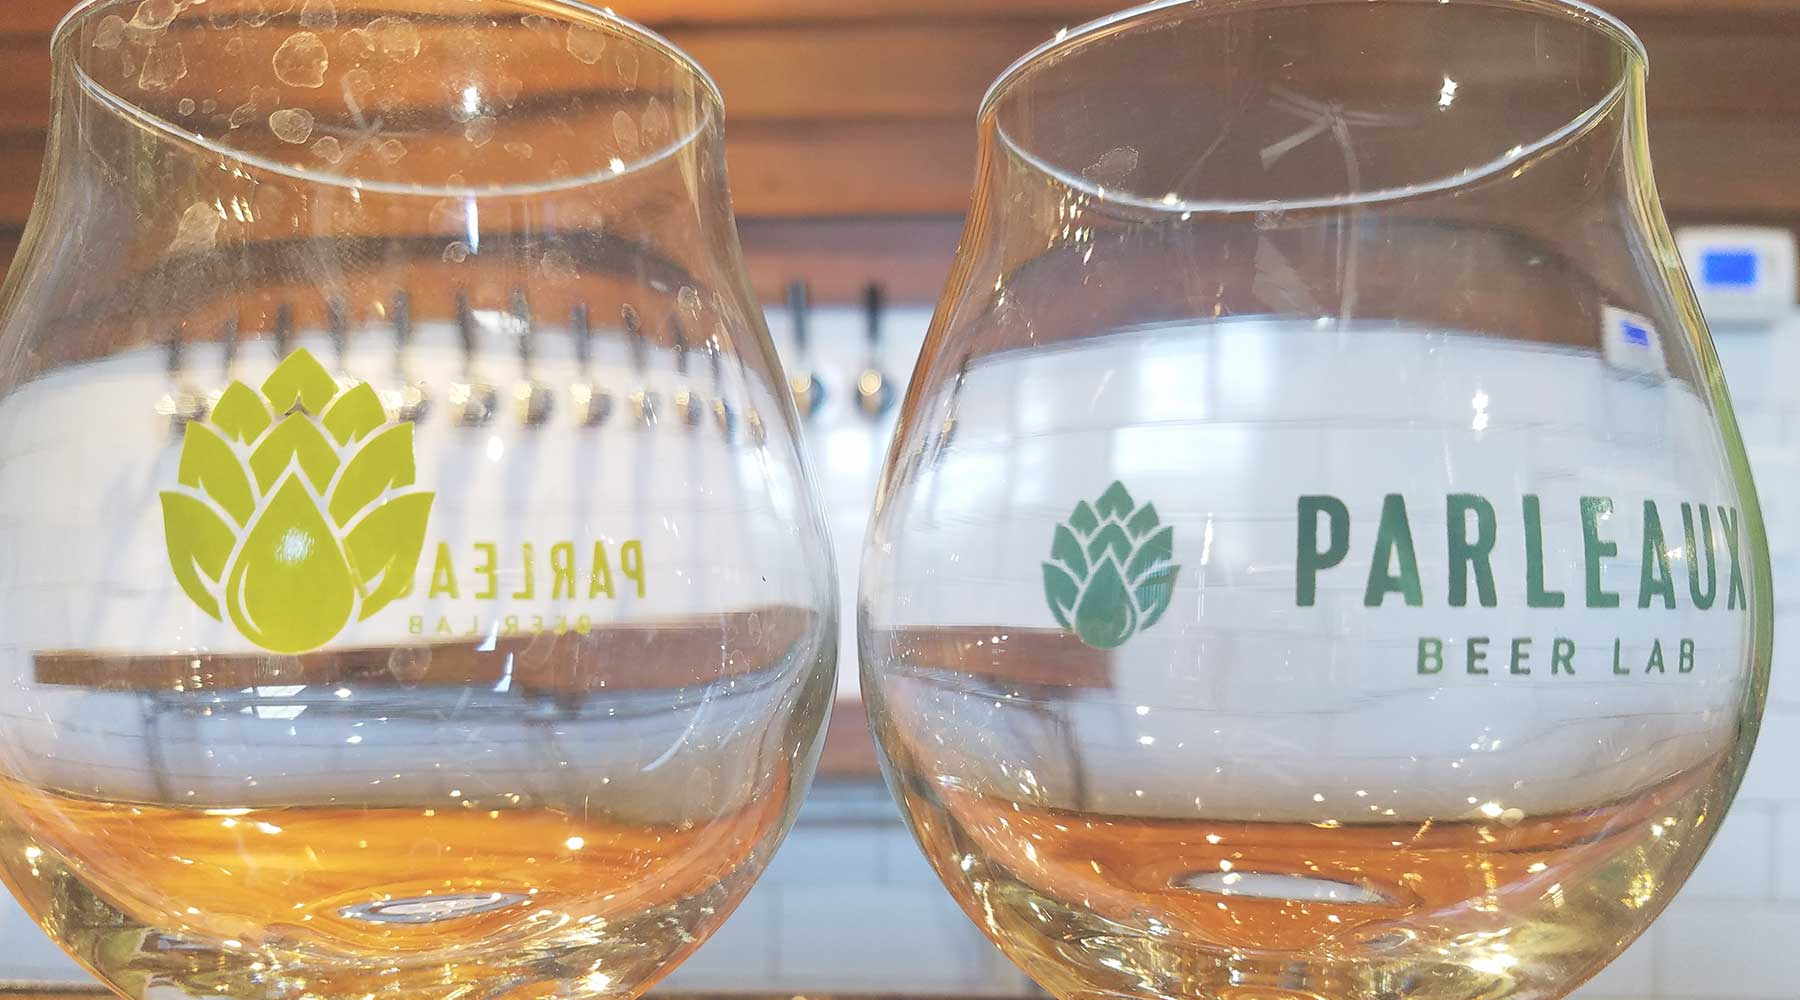 Parleaux Beer Lab | Just Wine